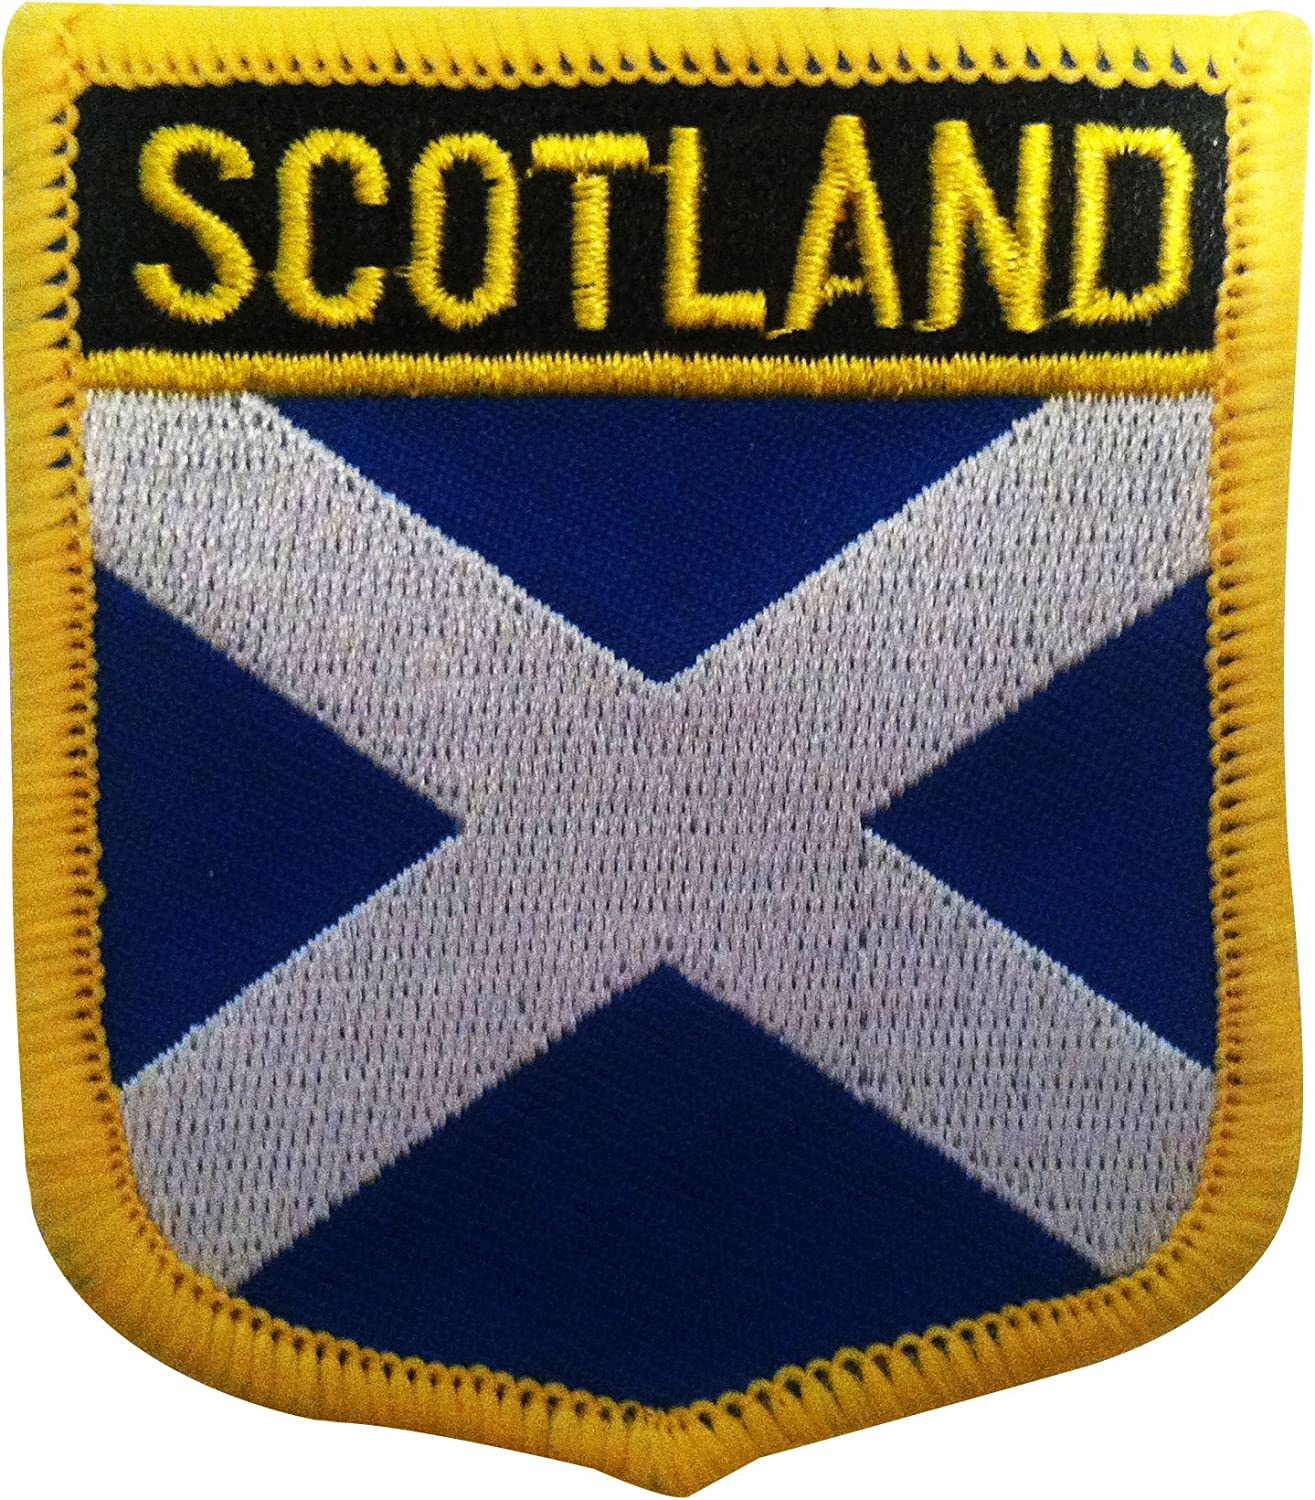 England Embroidered Patch Iron//Sew On Clothes Country National Flag 7 X 4.3 cm